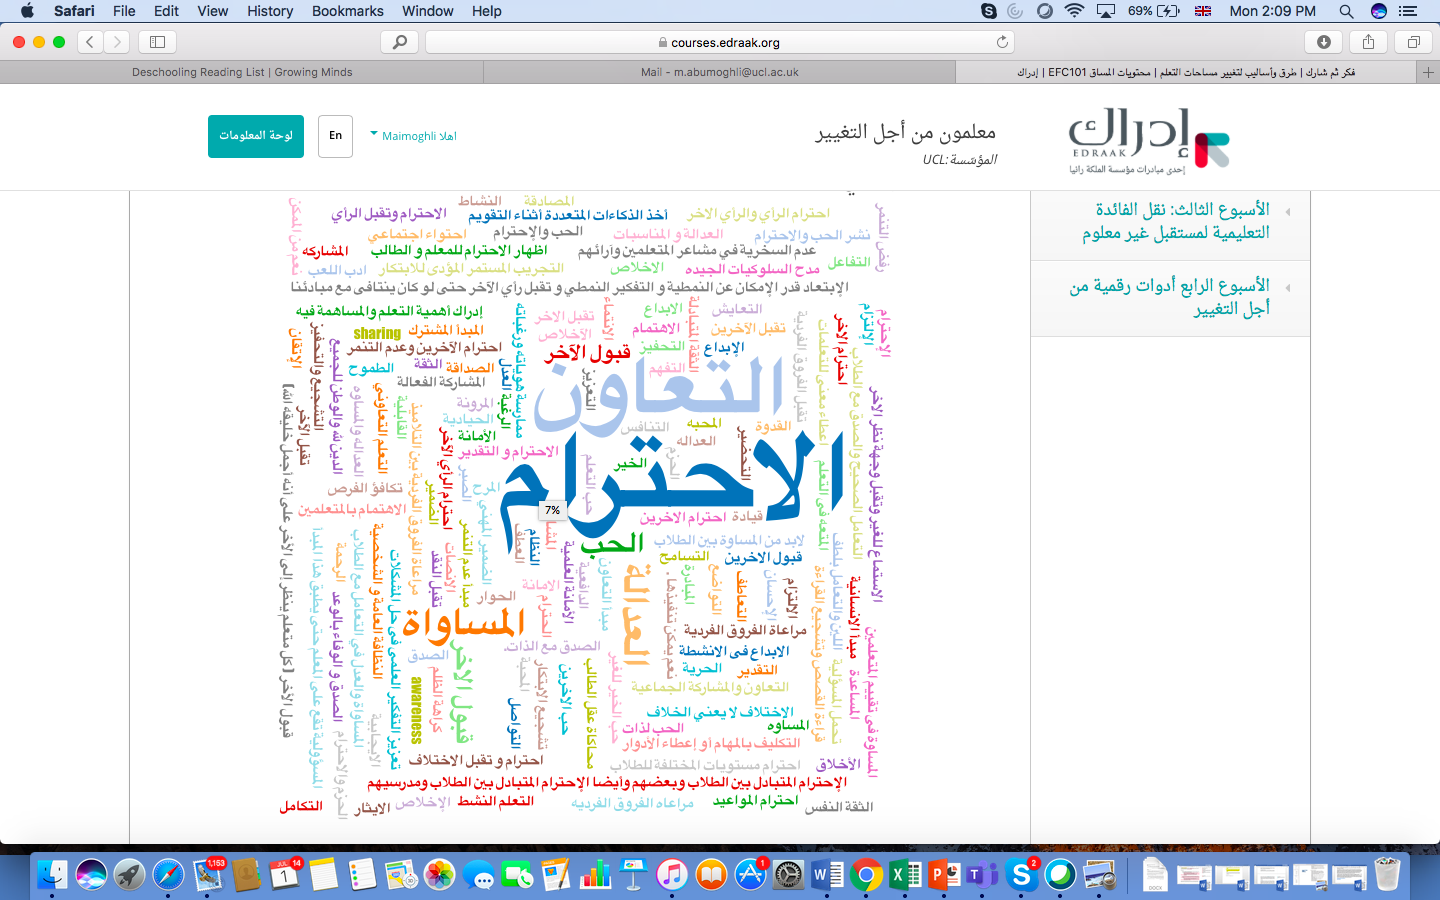 Wordcloud taken from the Edraak platform where 1144 participants contributed words, highlighting: acceptance, respect, equality, cooperation, communication and justice